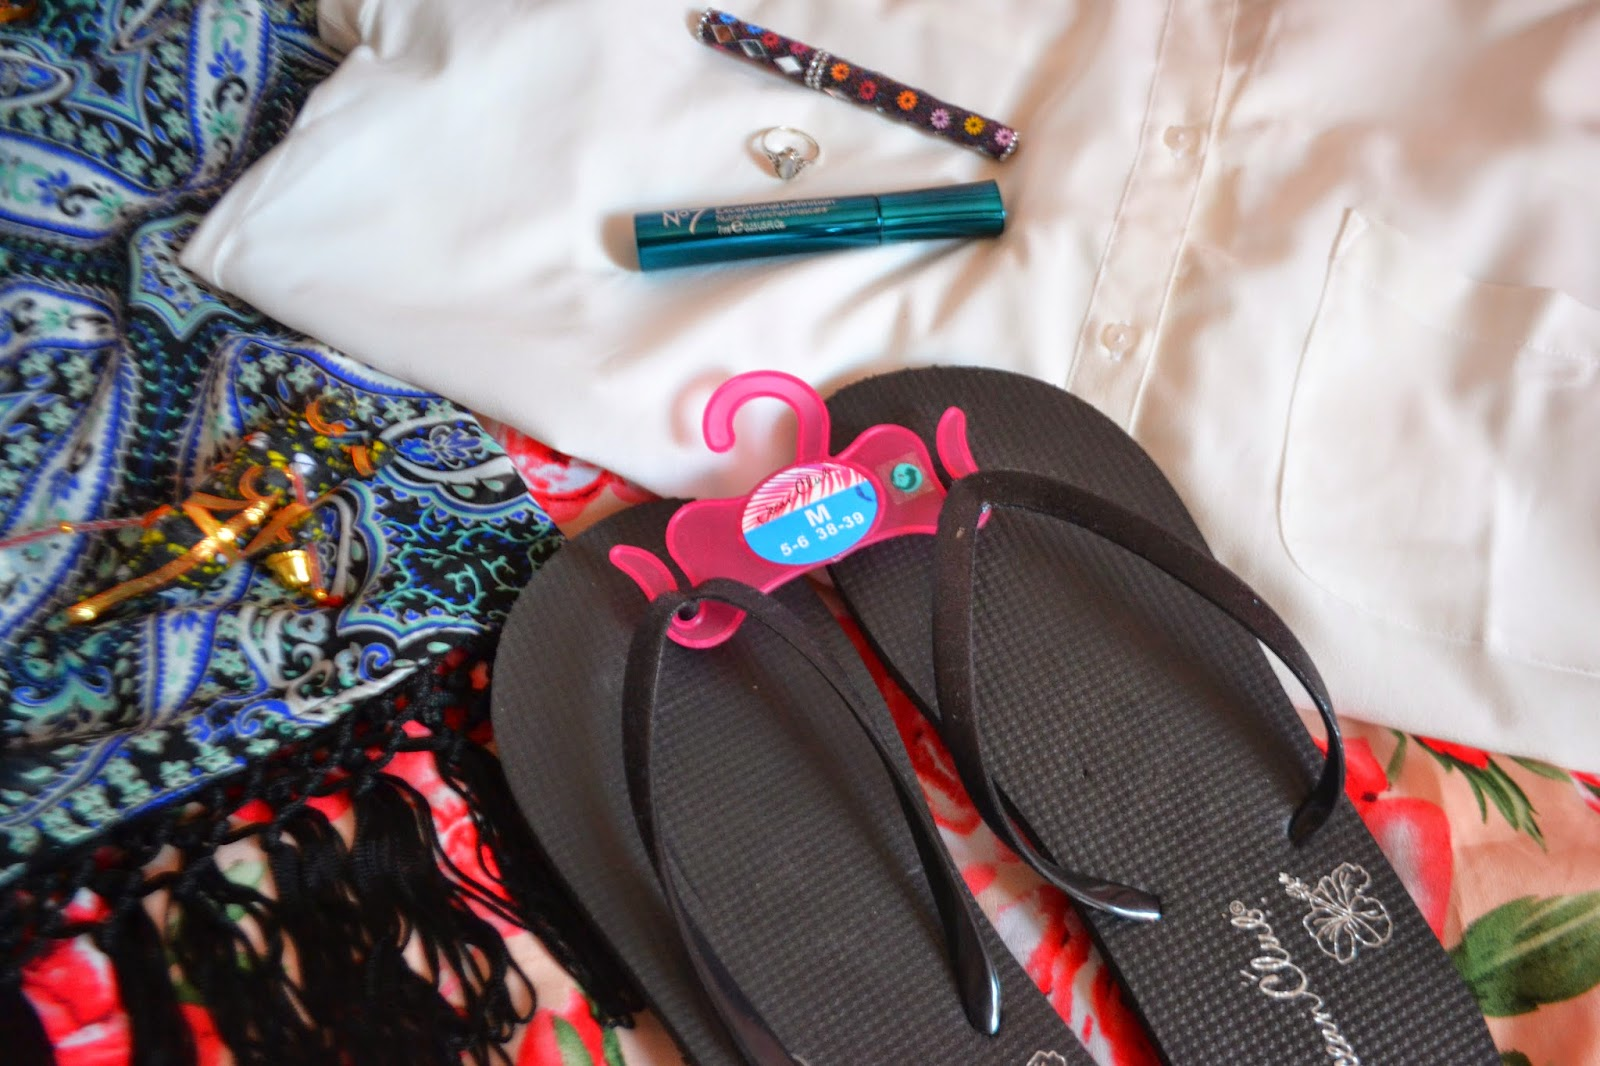 A shot showing the flip flops, the mascara, the string of elephants, the ring, and kimono, and the white blouse